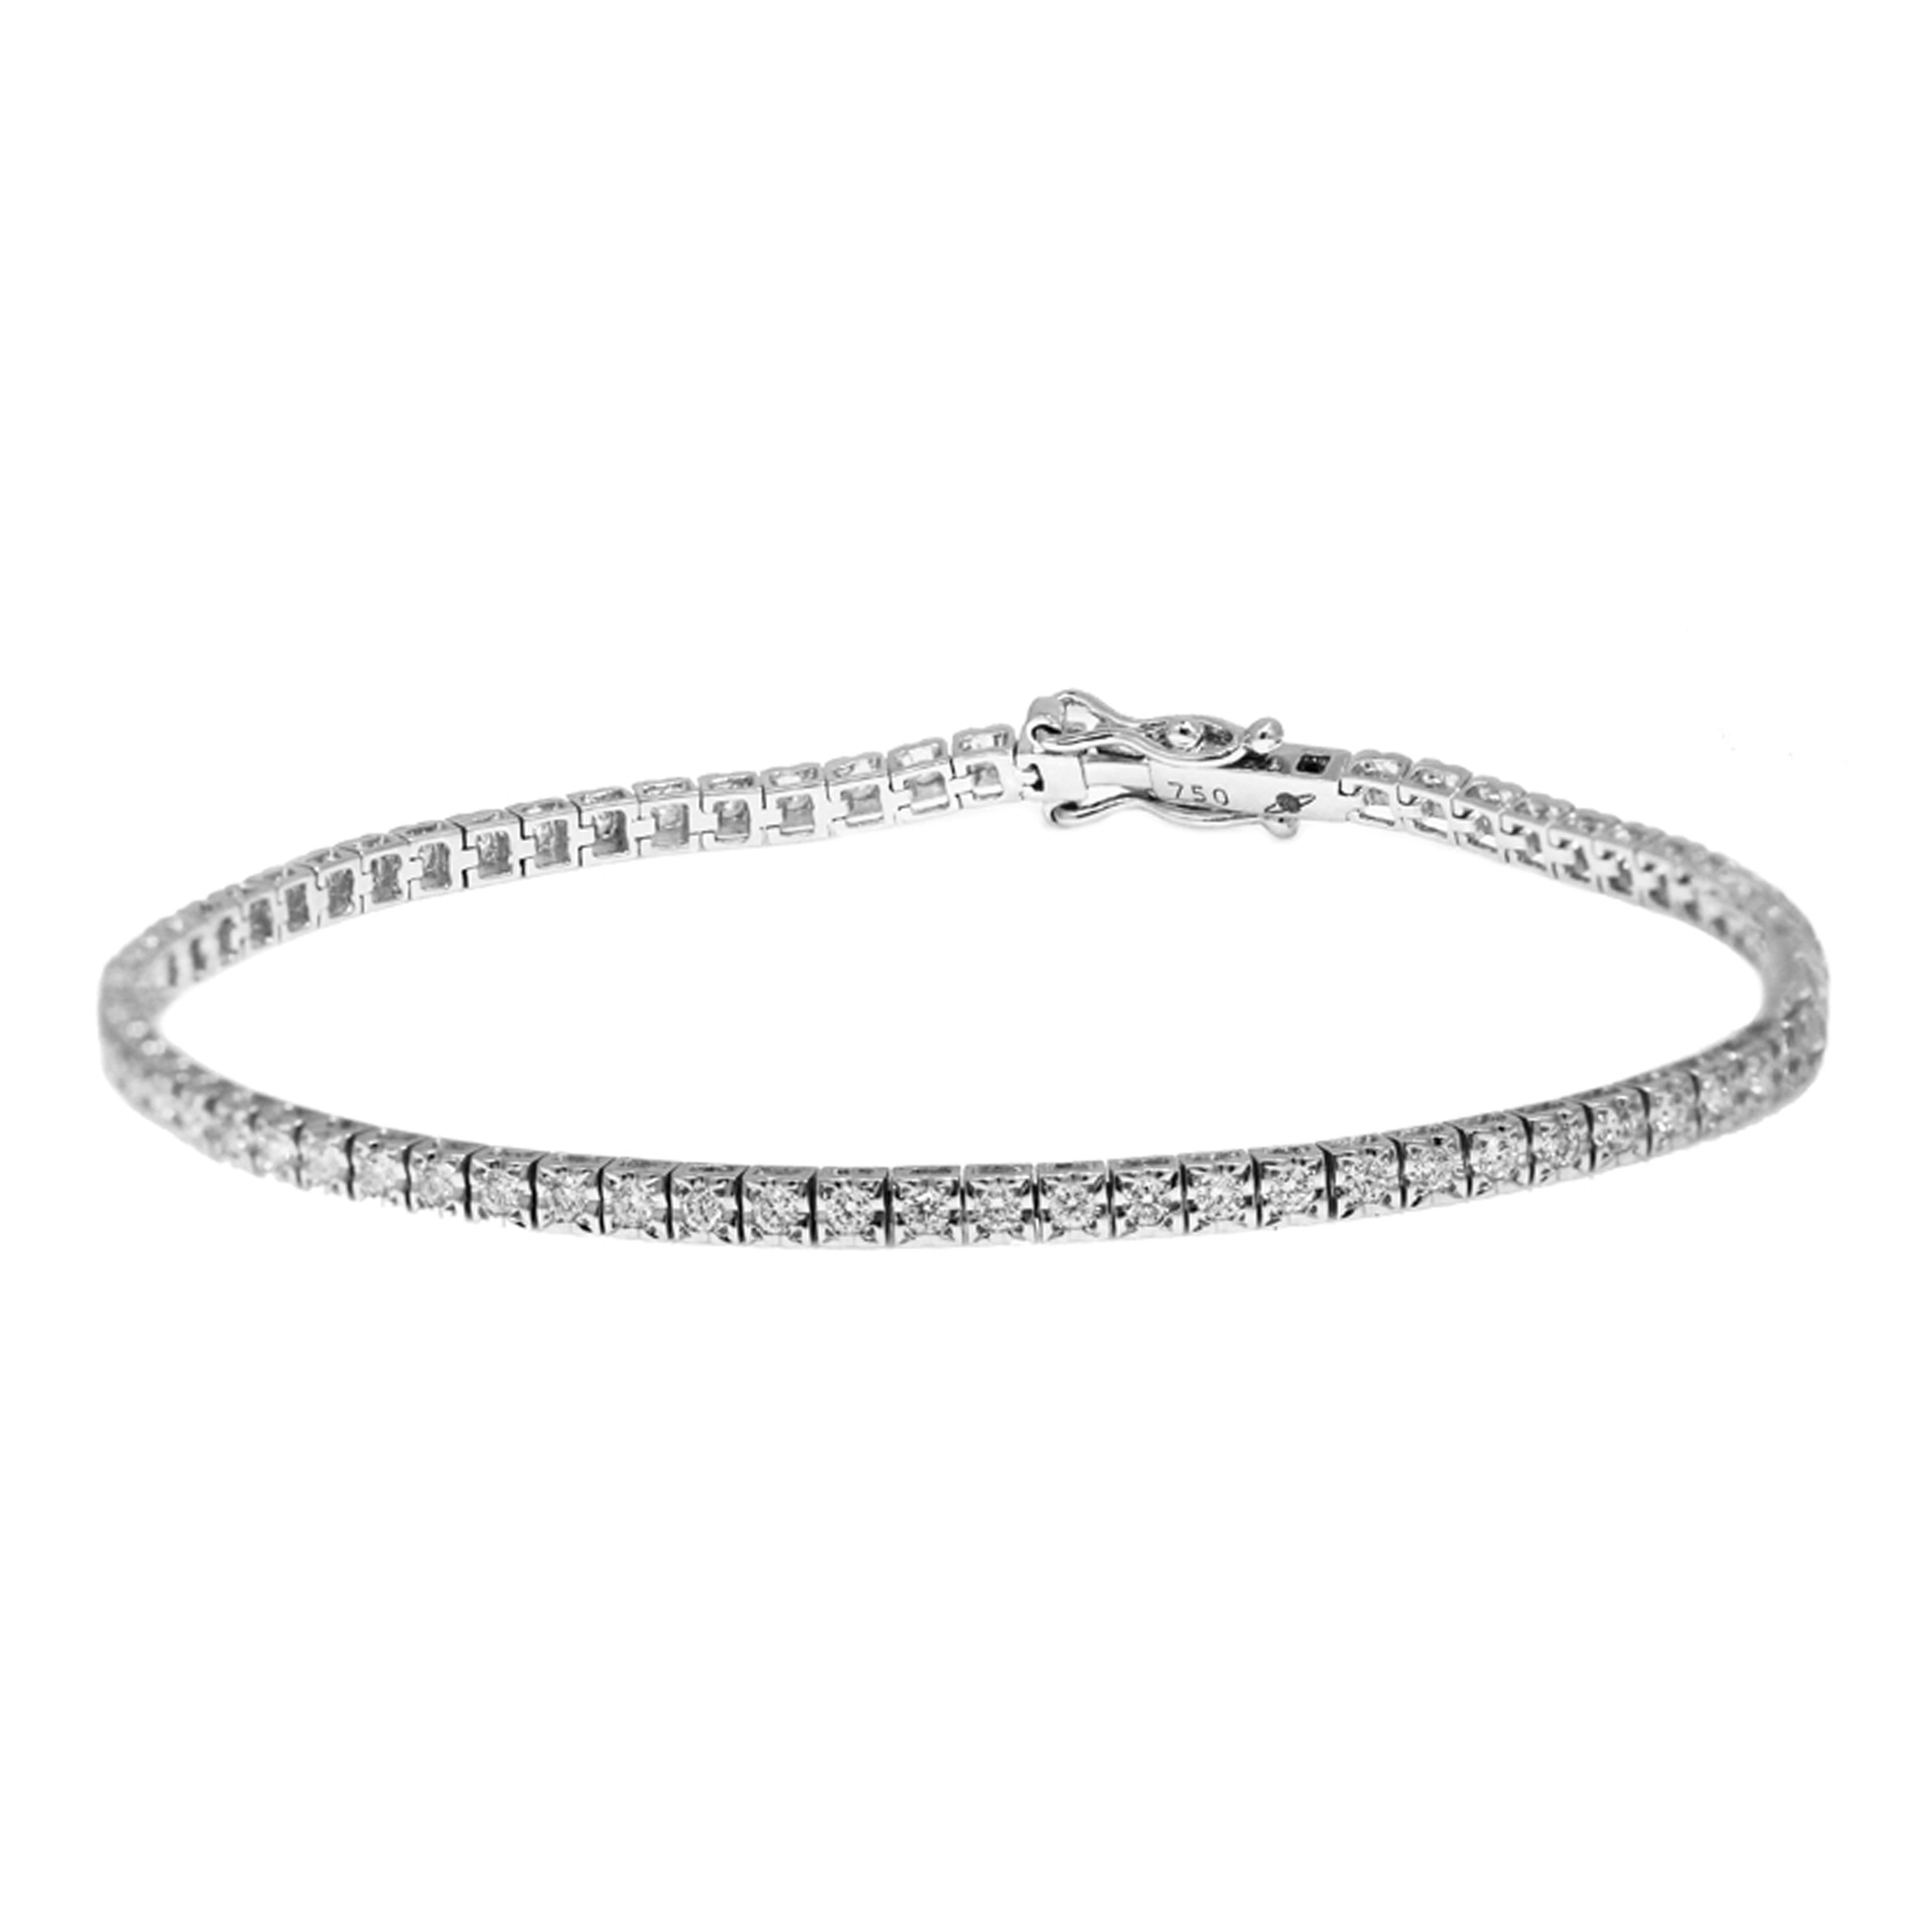 the silver charm perfect make bingefashion bangles bracelet bracelets with style mmrjszl